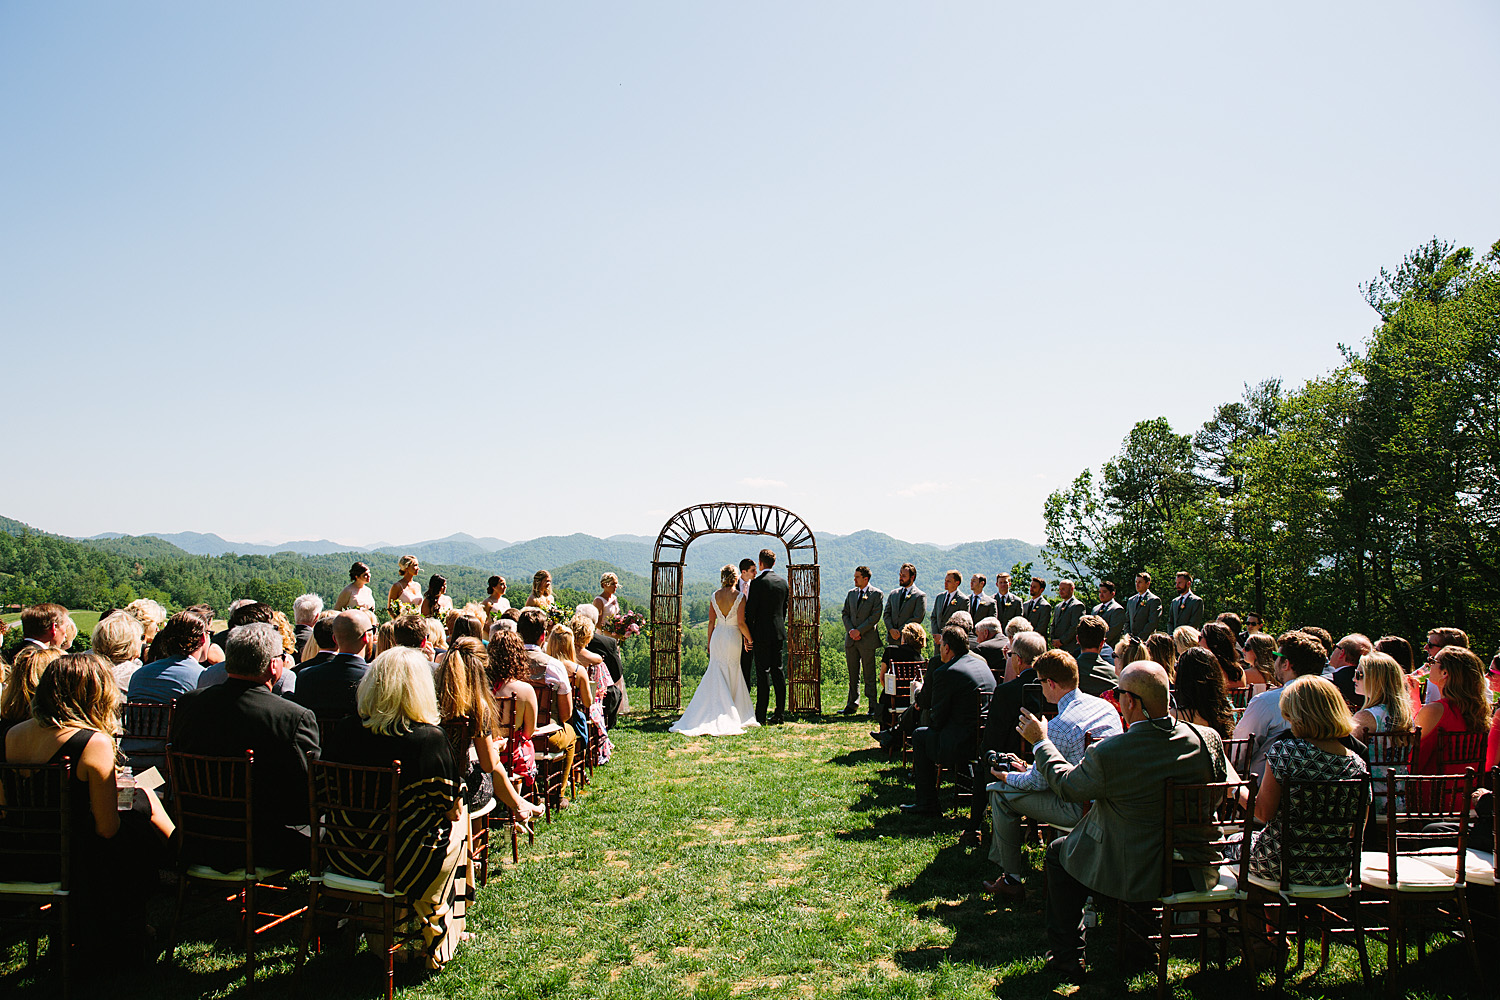 Jeremy-Russell-Asheville-The-Ridge-Wedding-1705-46.jpg